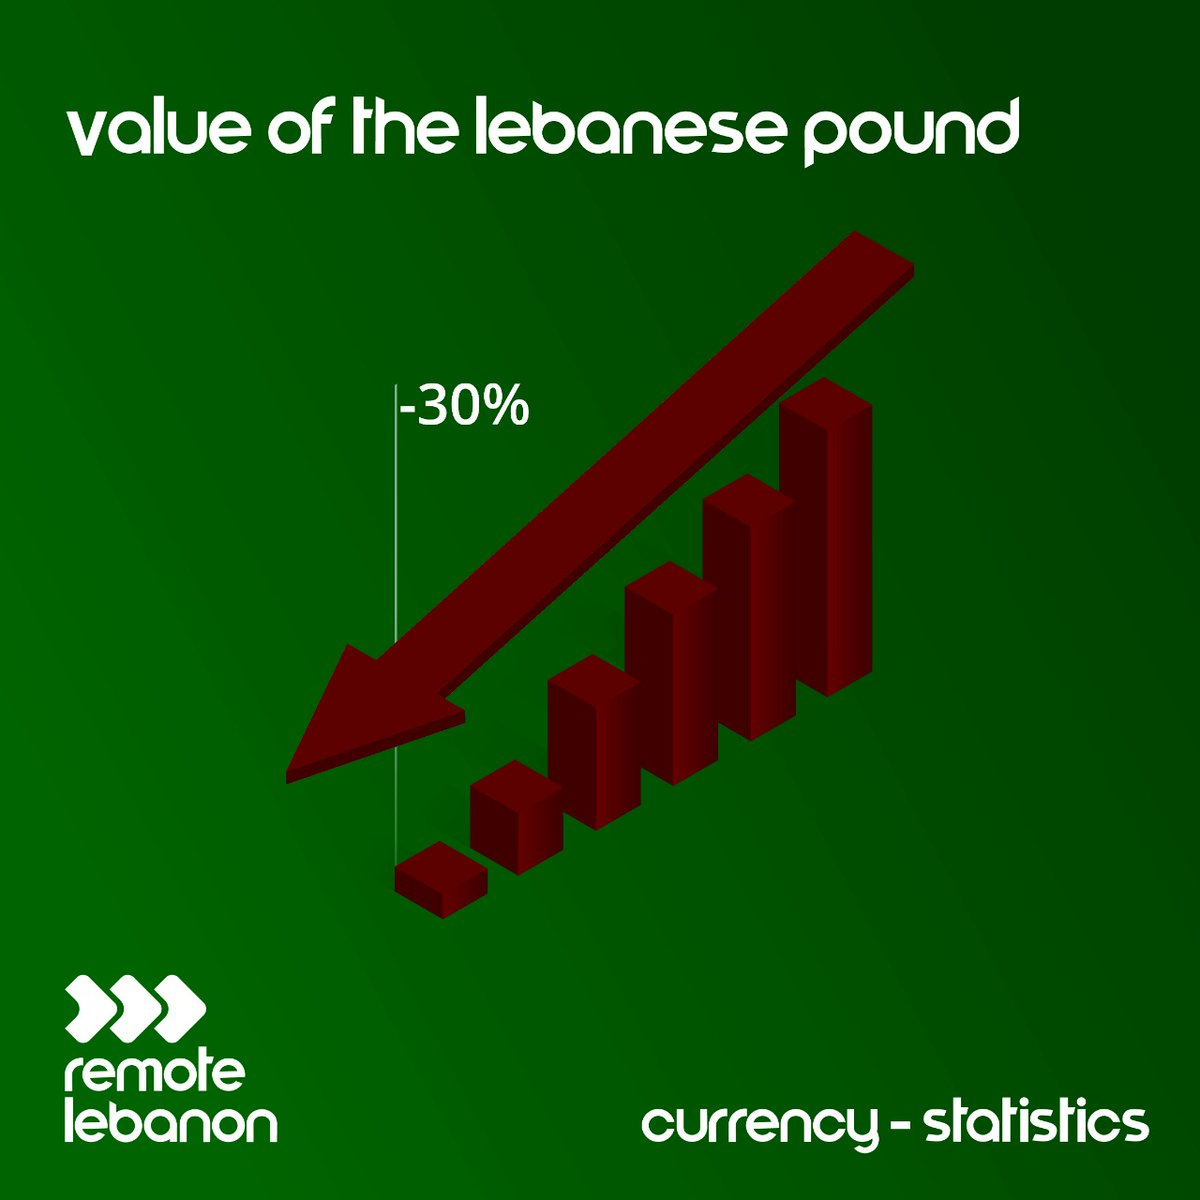 The Lebanese pound has lost around 30% of its value in the unofficial exchange market for the first time since it was valued at LBP 1,515 to the dollar in 1997.   http://remotelebanon.com   #Lebanon #Beirut #Dollarcrisis #RemoteWork #workfromhome #jobsearch #Jobspic.twitter.com/8qual3bwZ9